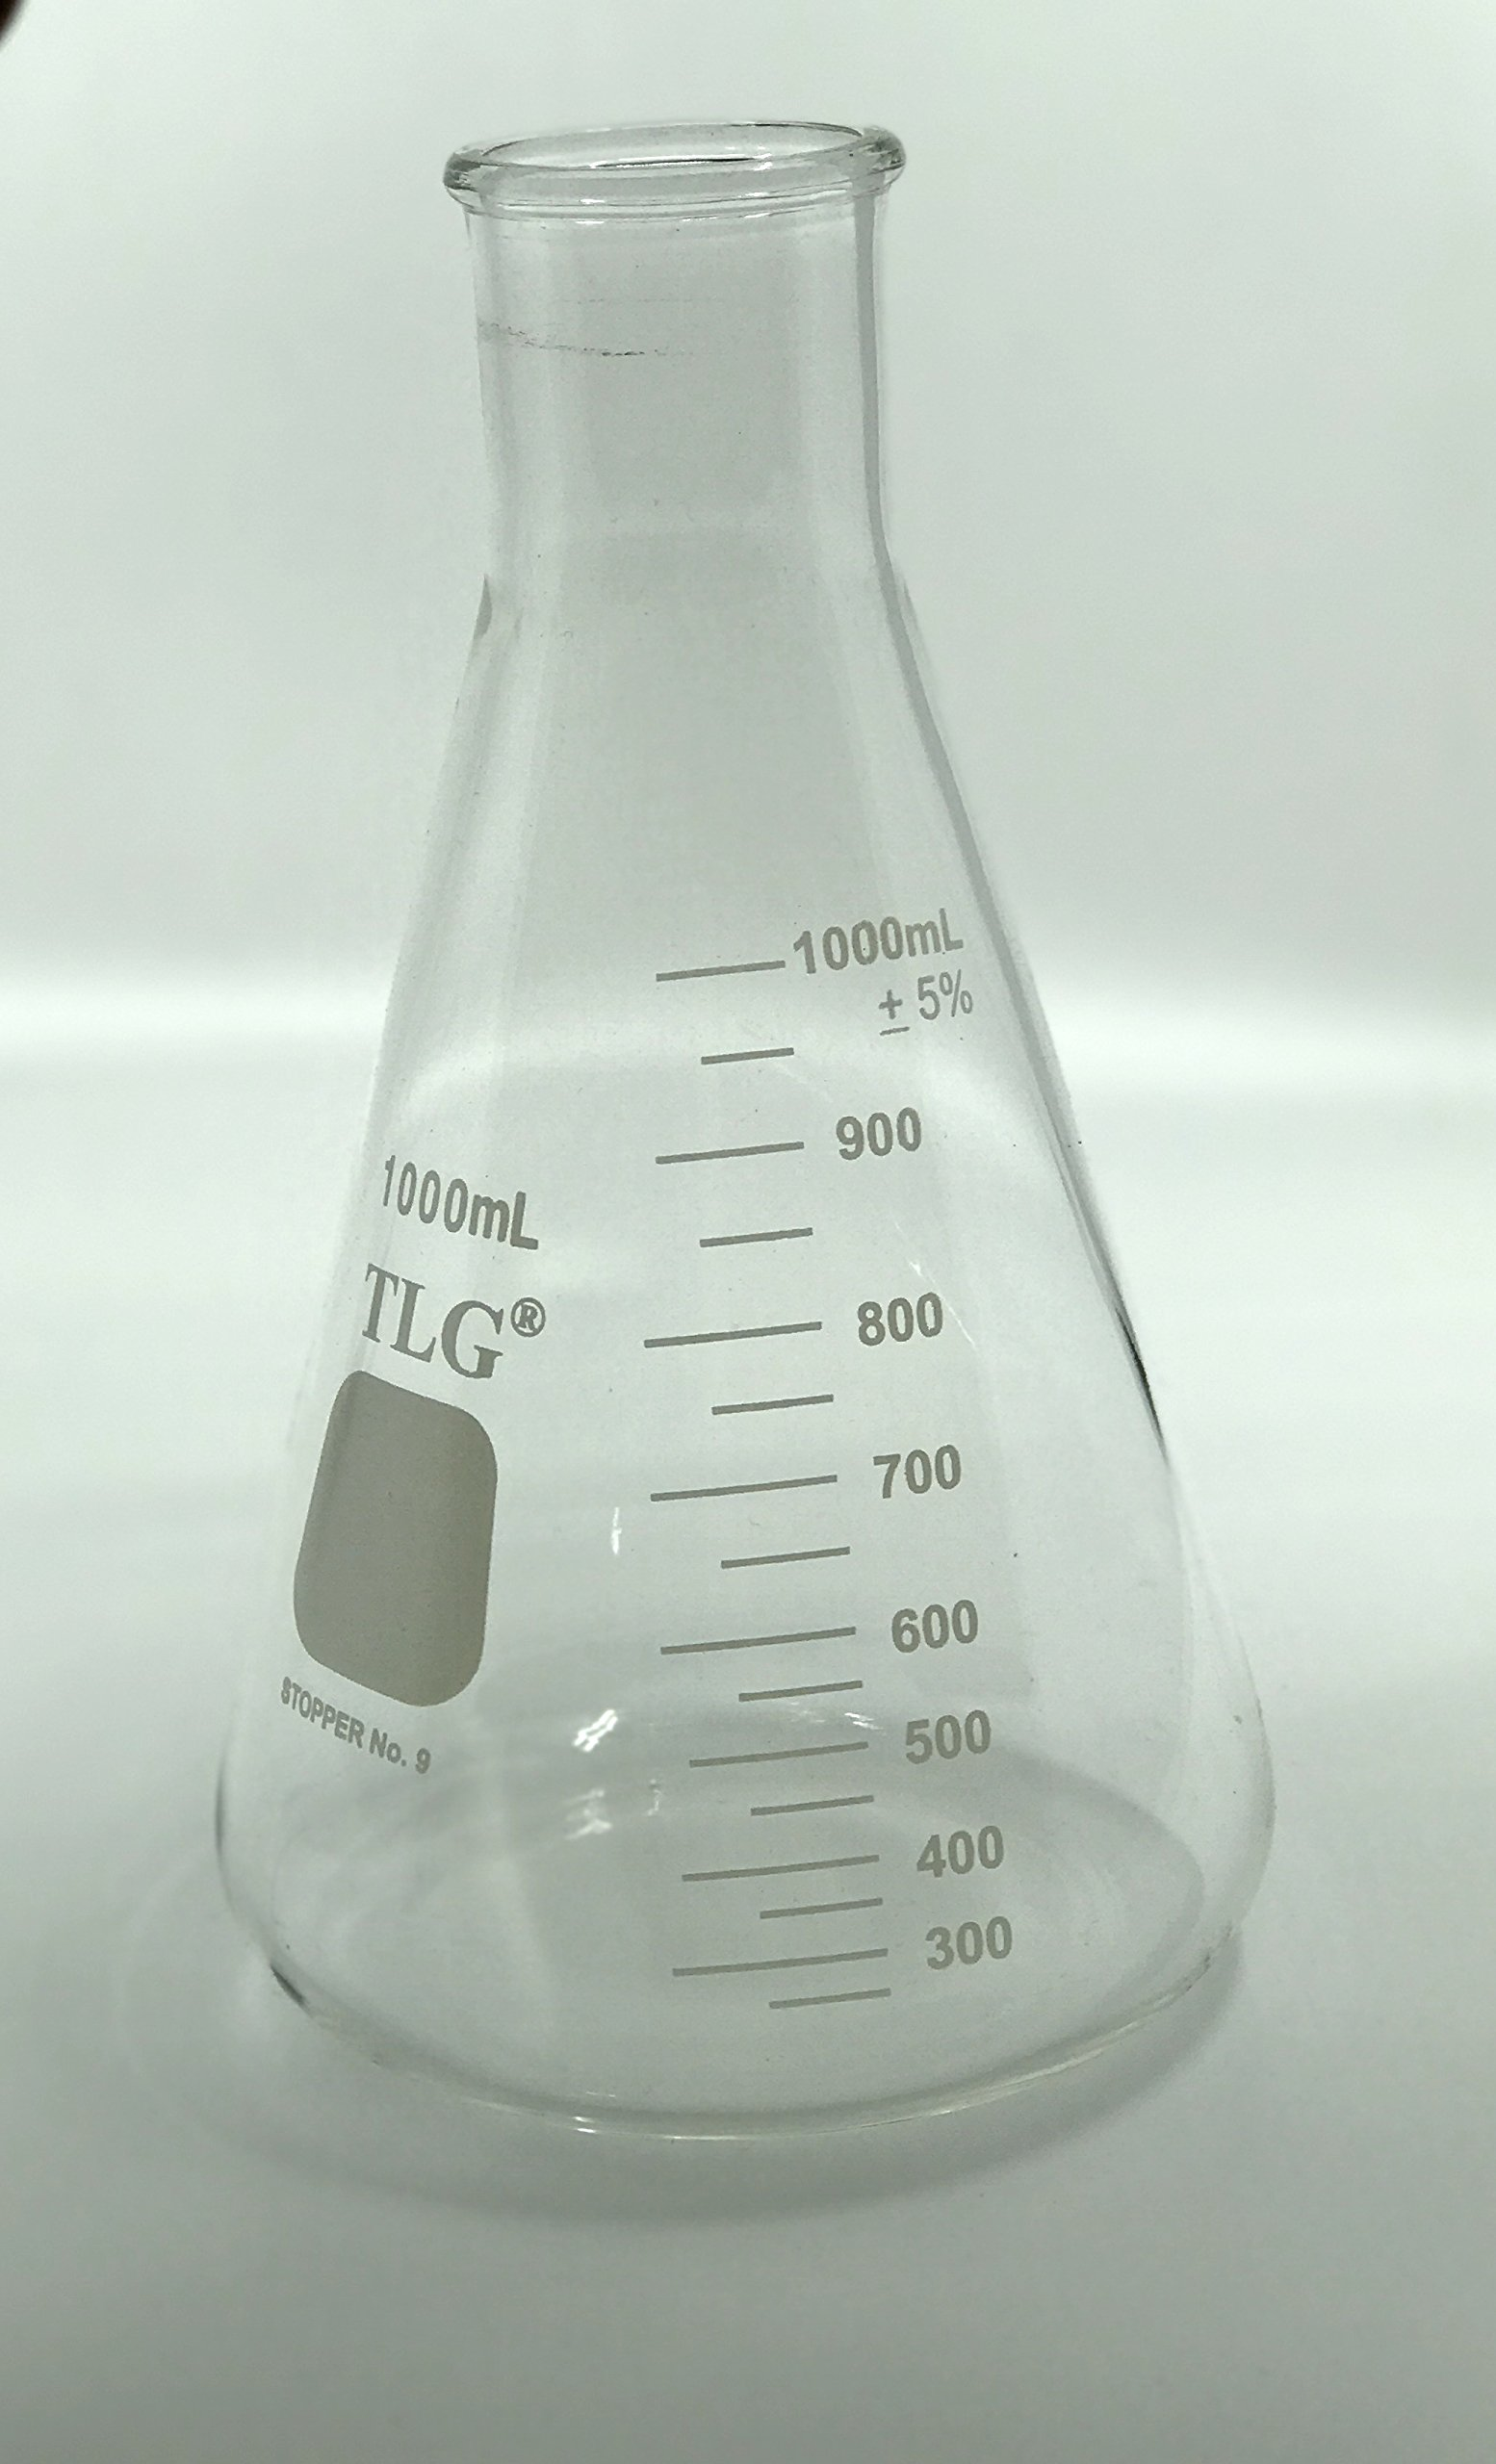 Chem Science INC 231.202.07 Erlenmeyer Flask, Narrow Neck with Graduation, Capacity 1000Ml, Rubber Stopper 9, 1000Milliliters, Degree C, Borosilicate Glass, (